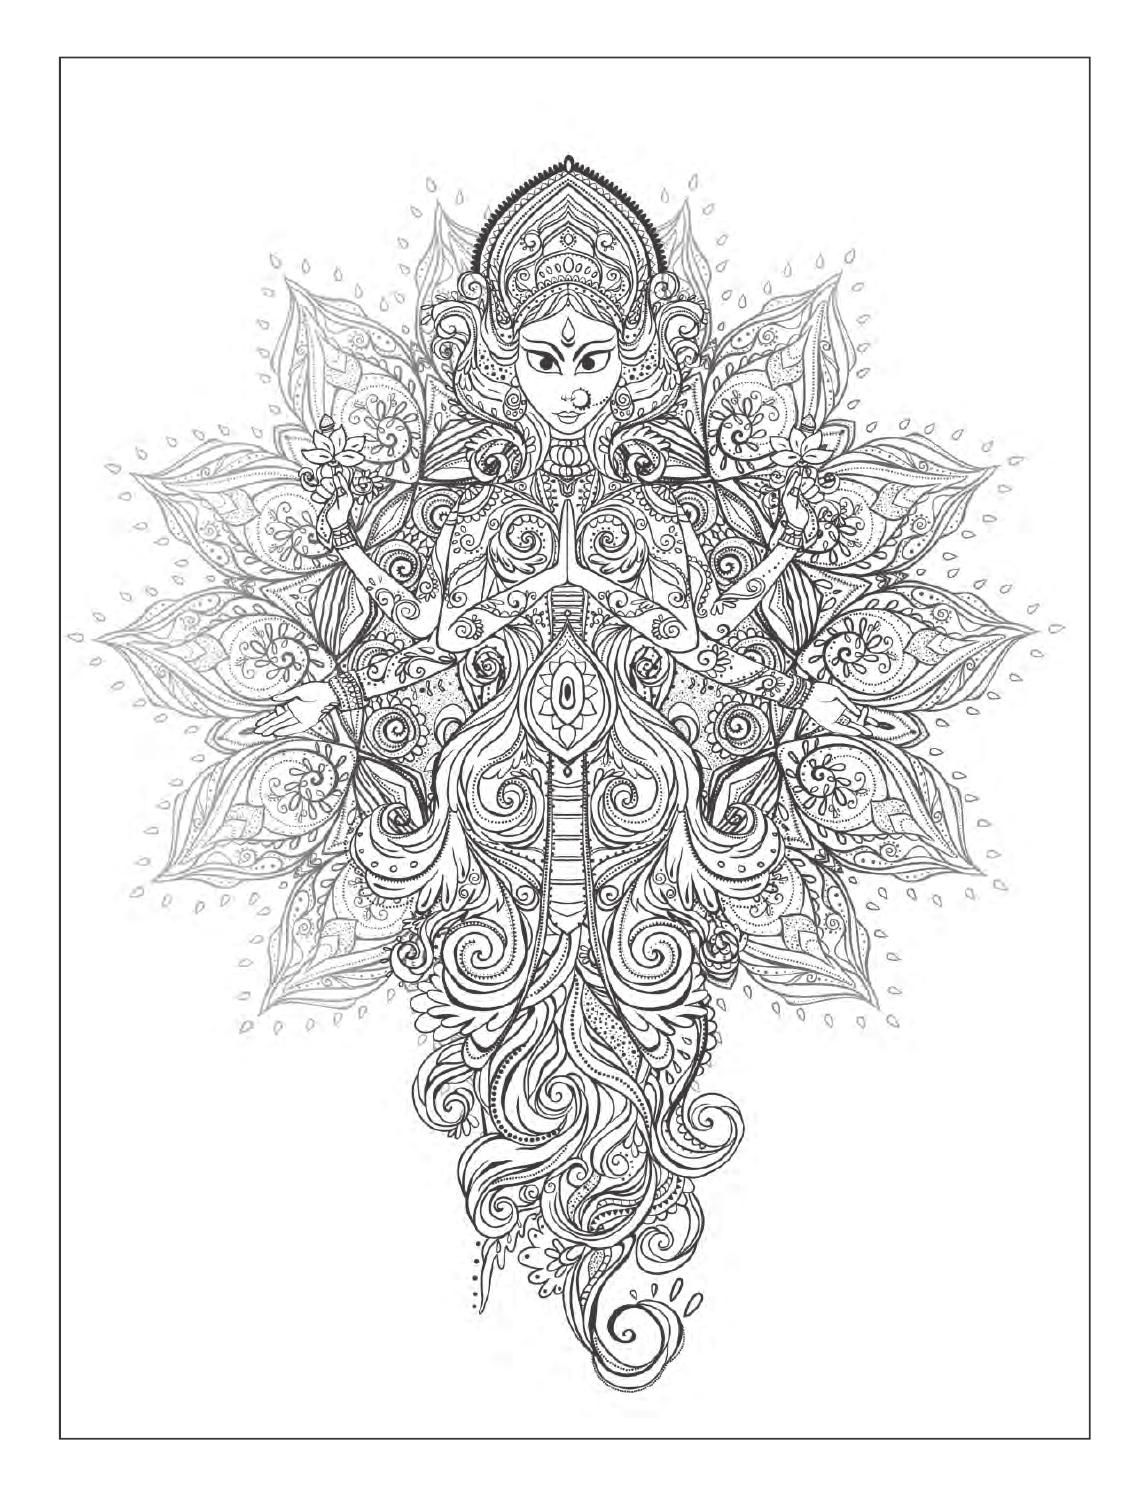 yoga mandala coloring pages 177 best images about coloring books on pinterest yoga mandala pages coloring